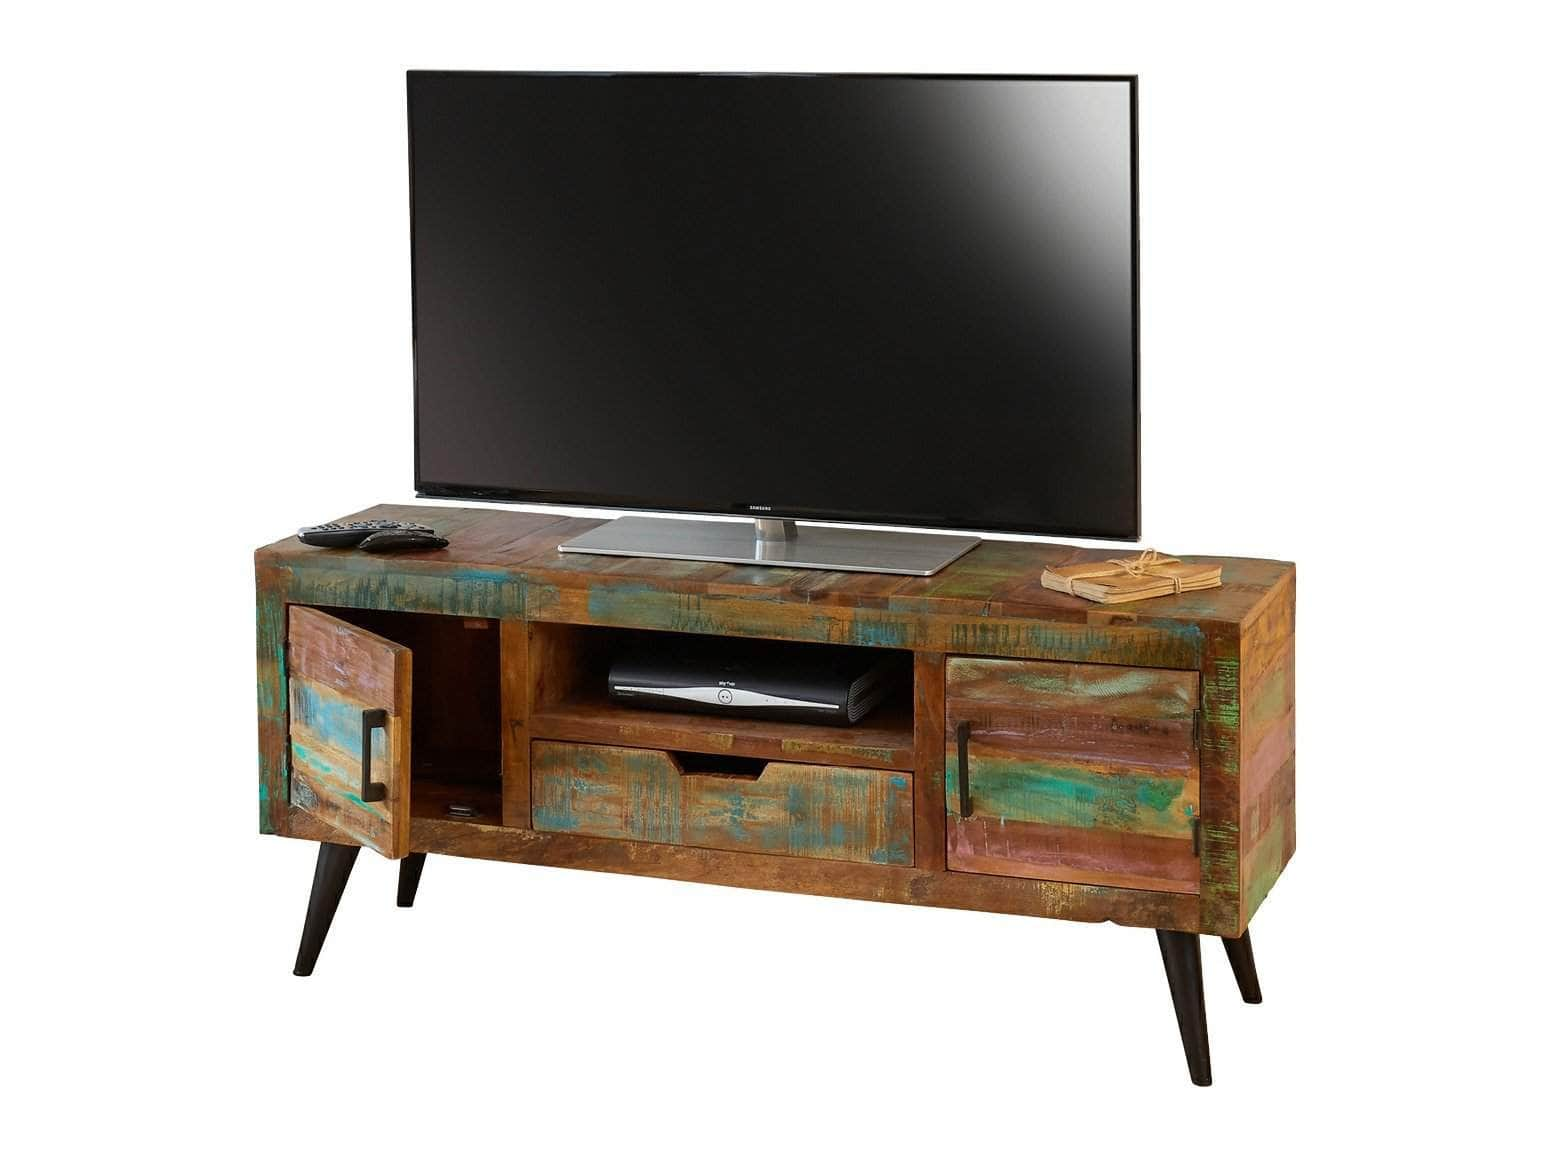 TV stand made from reclaimed Indian boat wood, featuring two small cupboards, a small drawer and a media box shelf